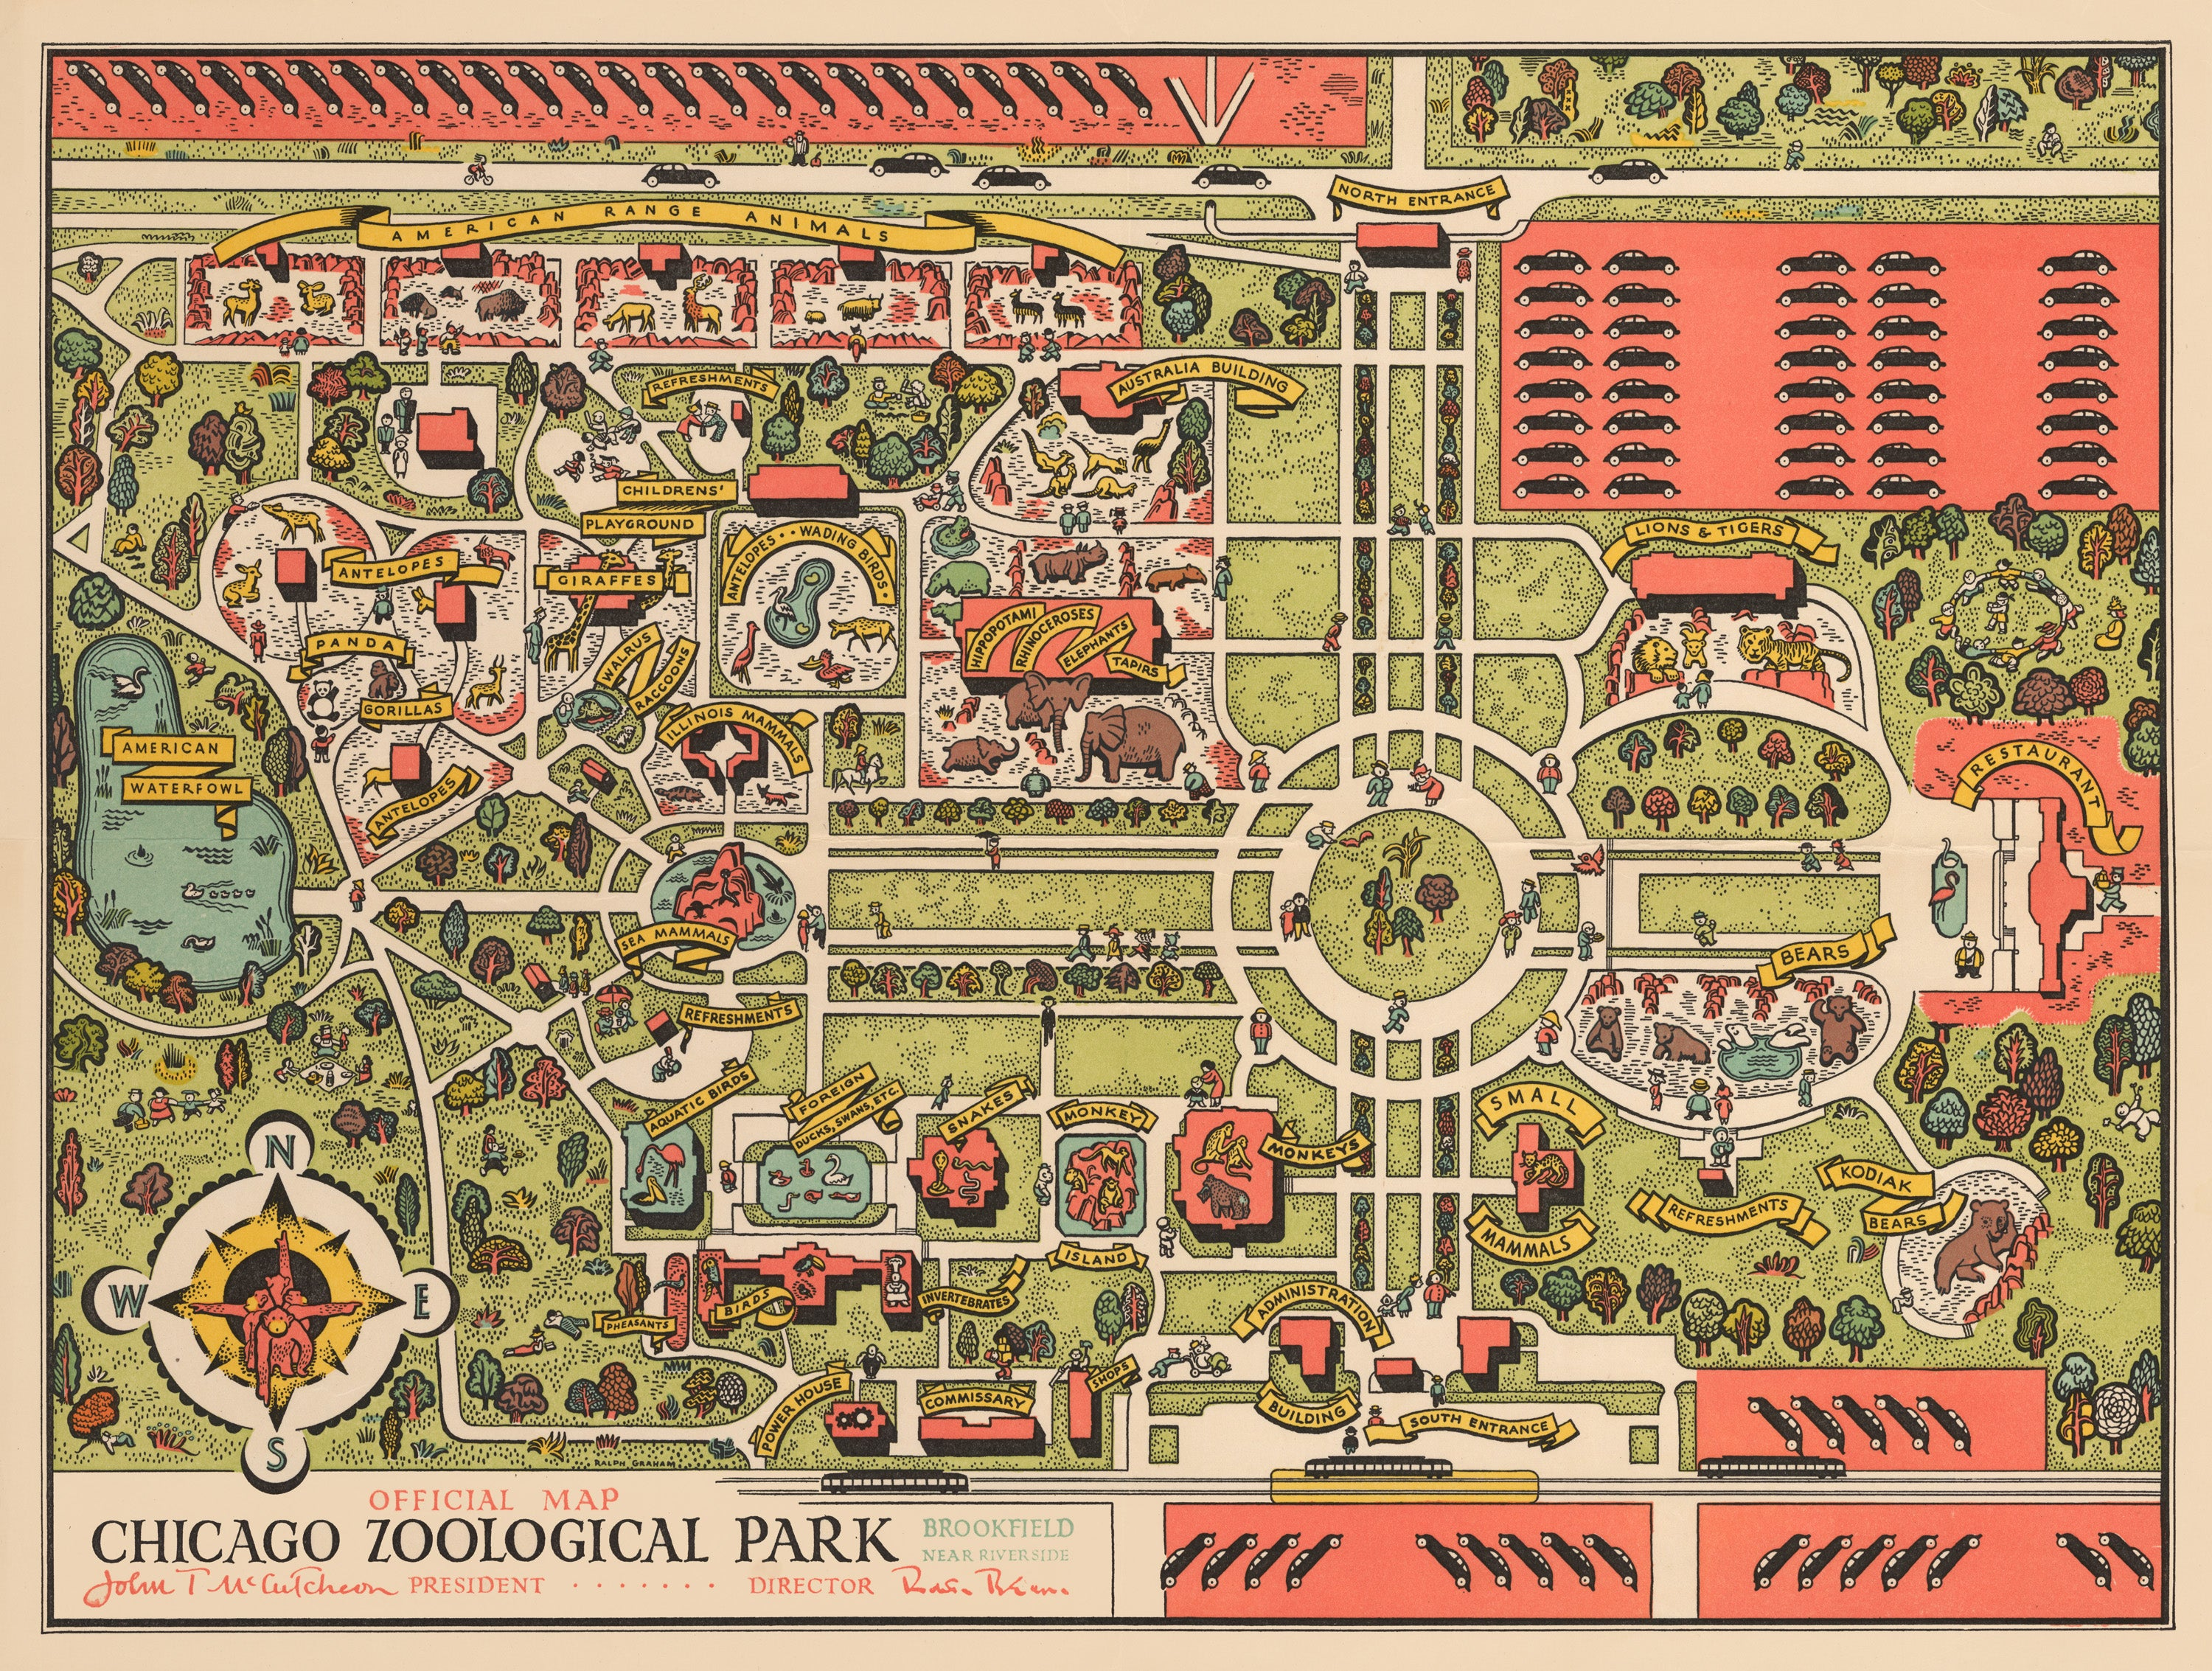 1948 Official Map Chicago Zoological Park on map of roselle, map of bensenville, map of frankfort, map of joliet, map of rockford, map of naperville, map of fox lake, map of illinois, map of will county, map of niles, map of pingree grove, map of quincy, map of schaumburg, map of highland, map of lockport, map of lisle, map of north shore, map of decatur, map of bellwood, map of brookfield,